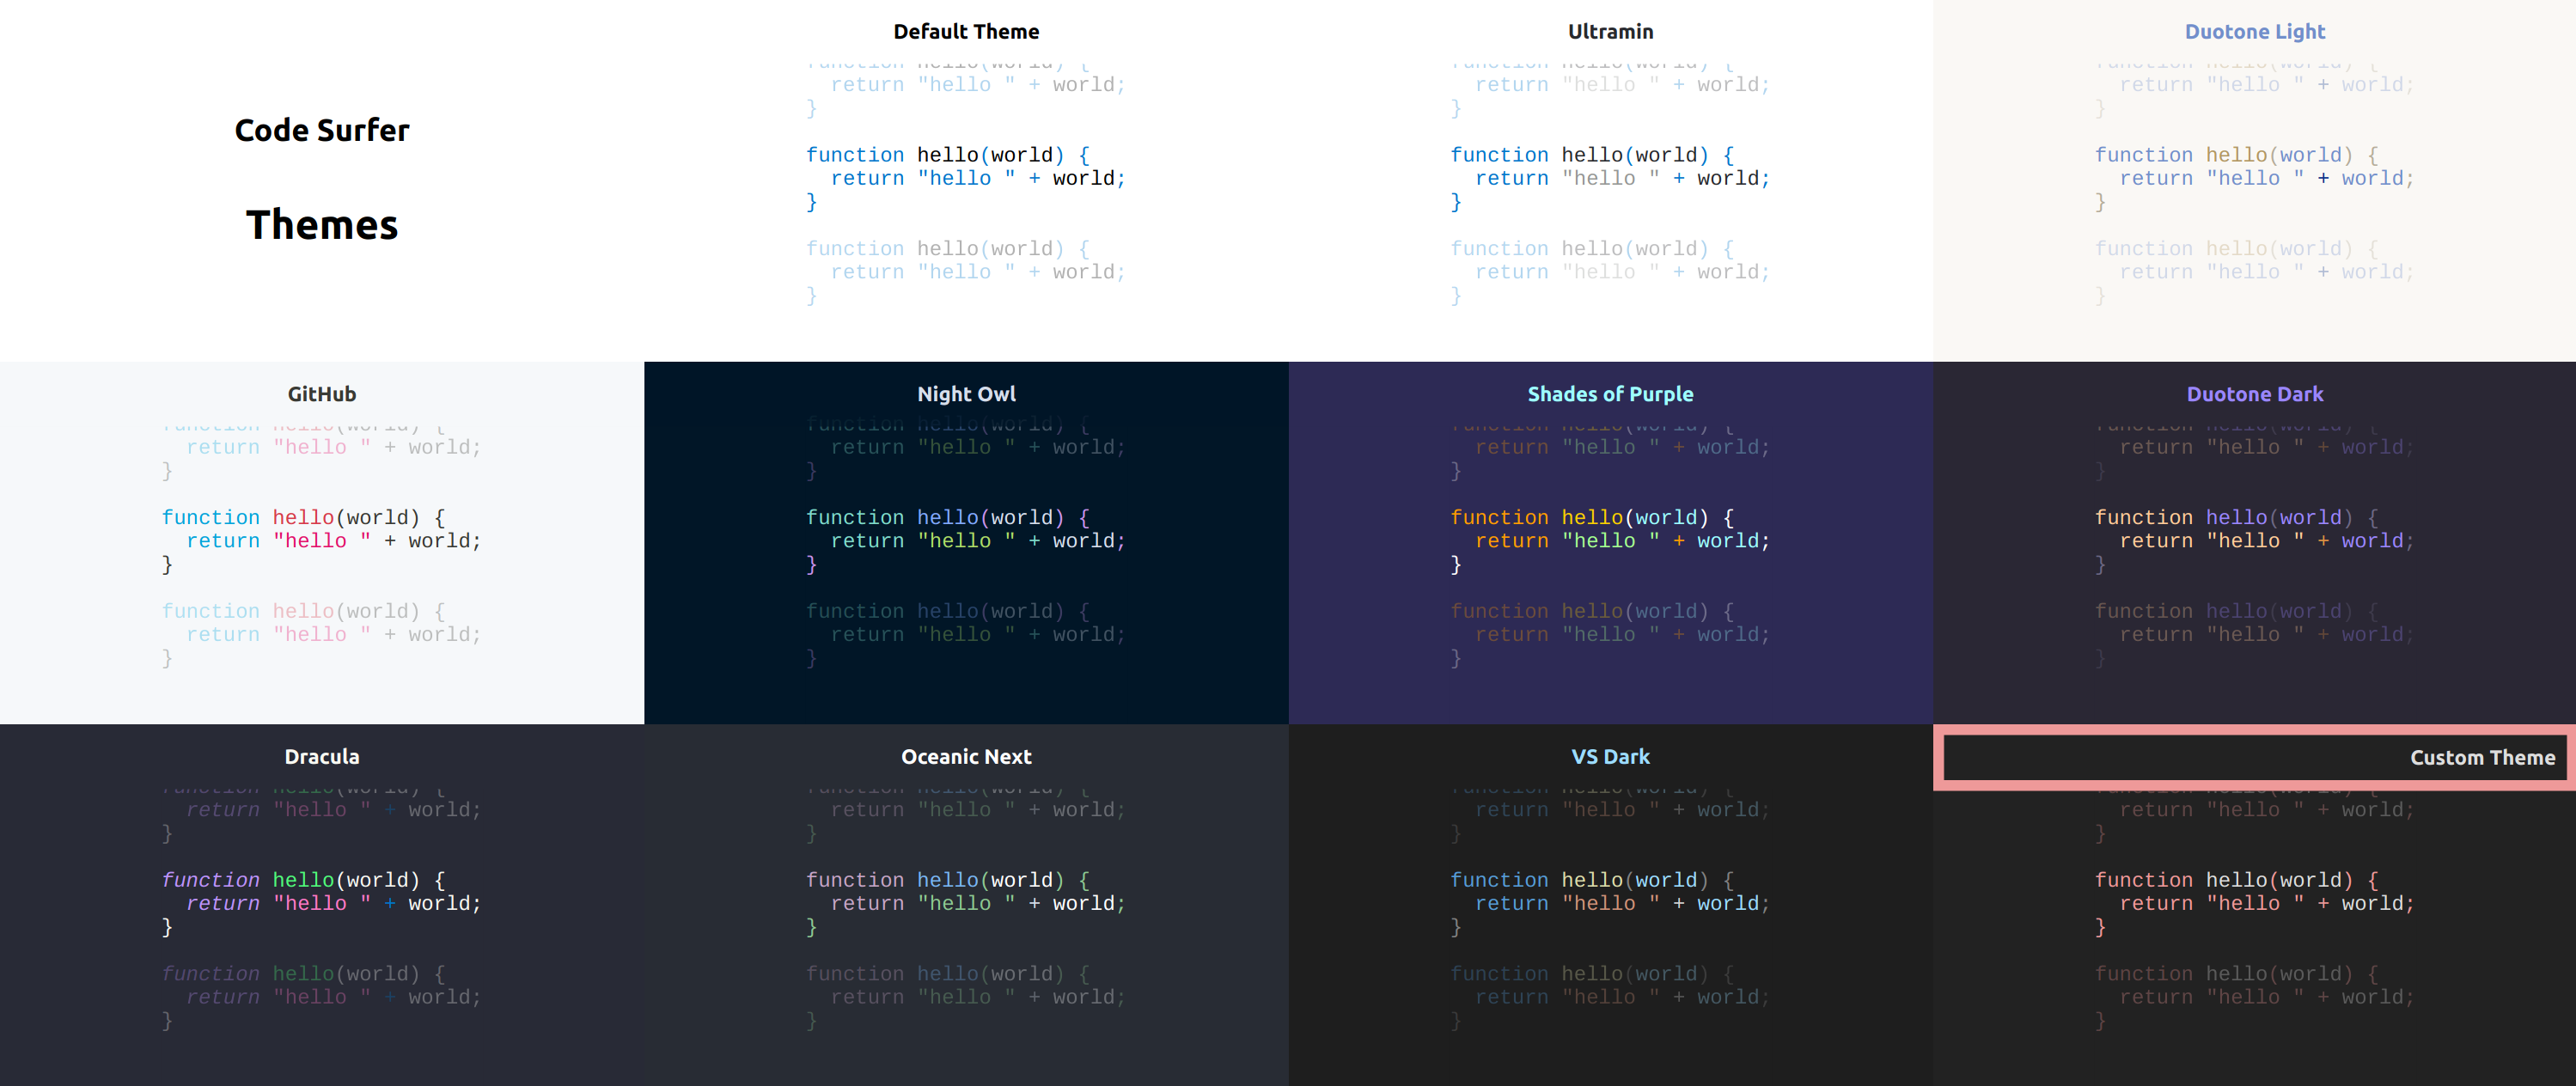 Code Surfer Themes